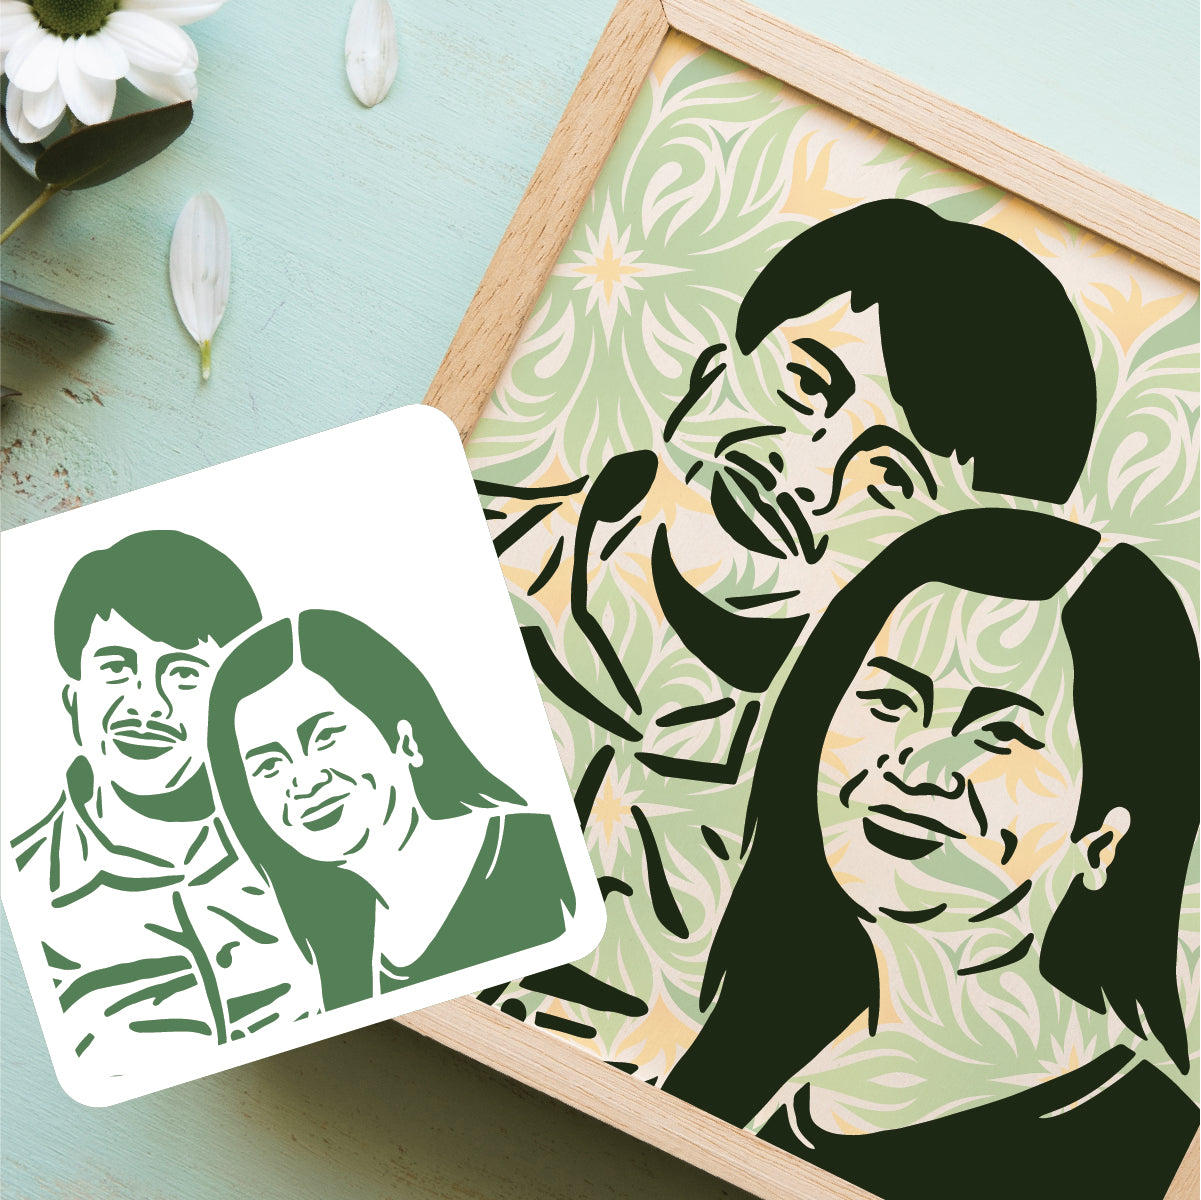 Custom Portrait Stencil Art by The Cork Project - Common Room PH